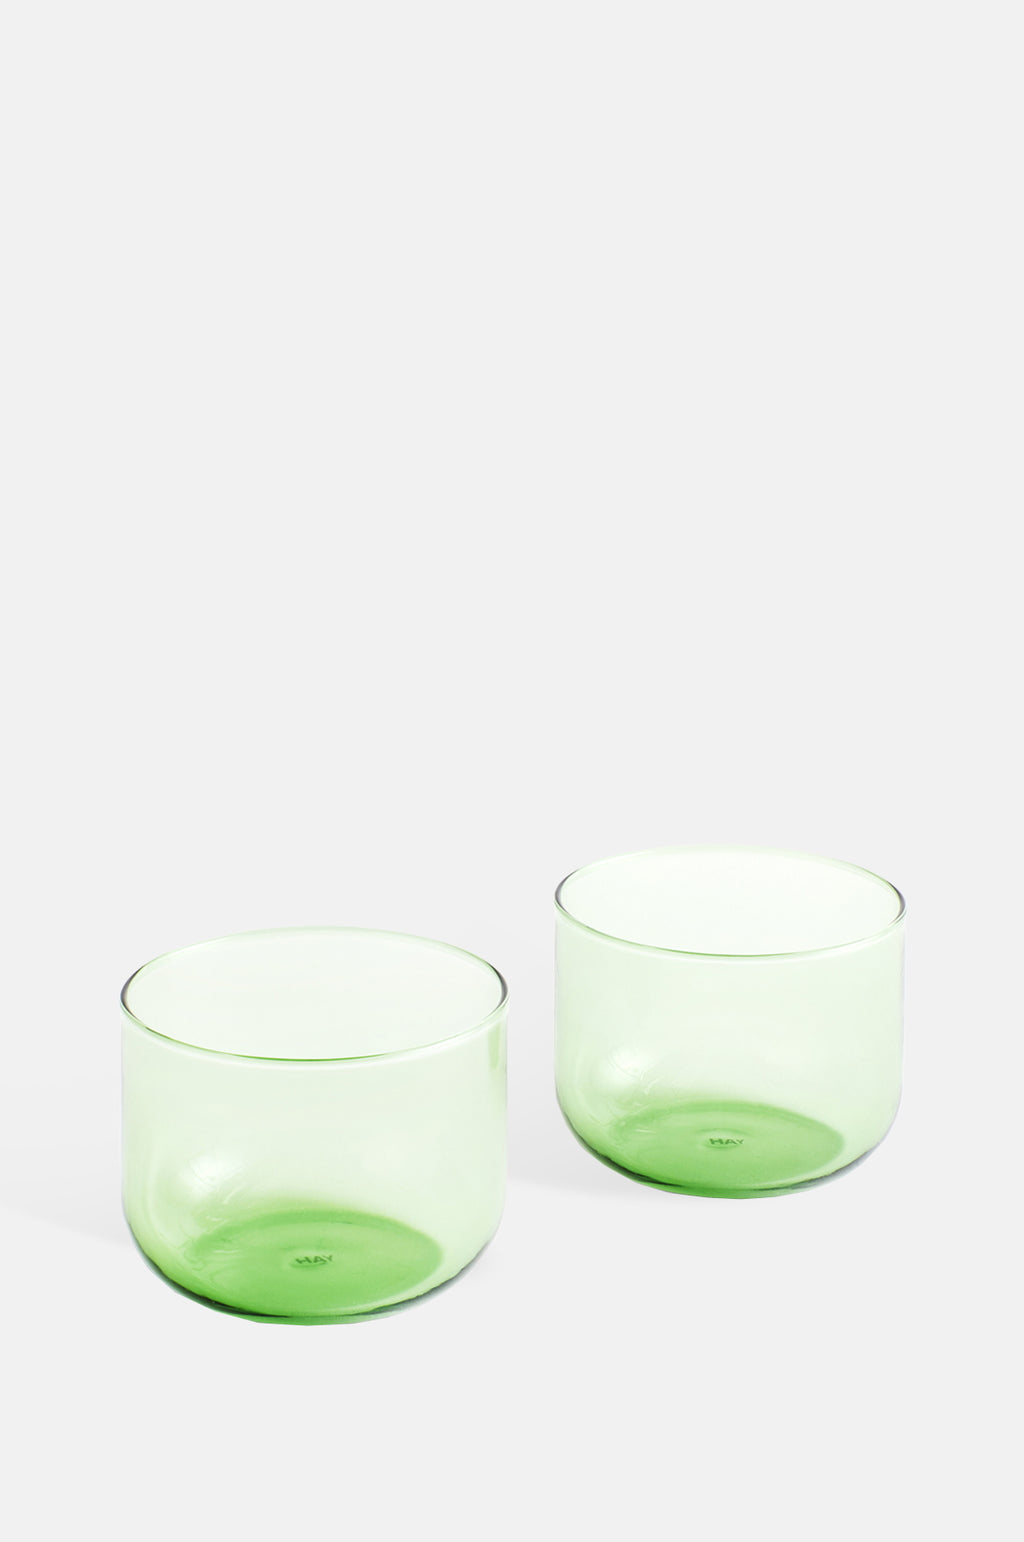 Set of 2 Tint Glasses in Green